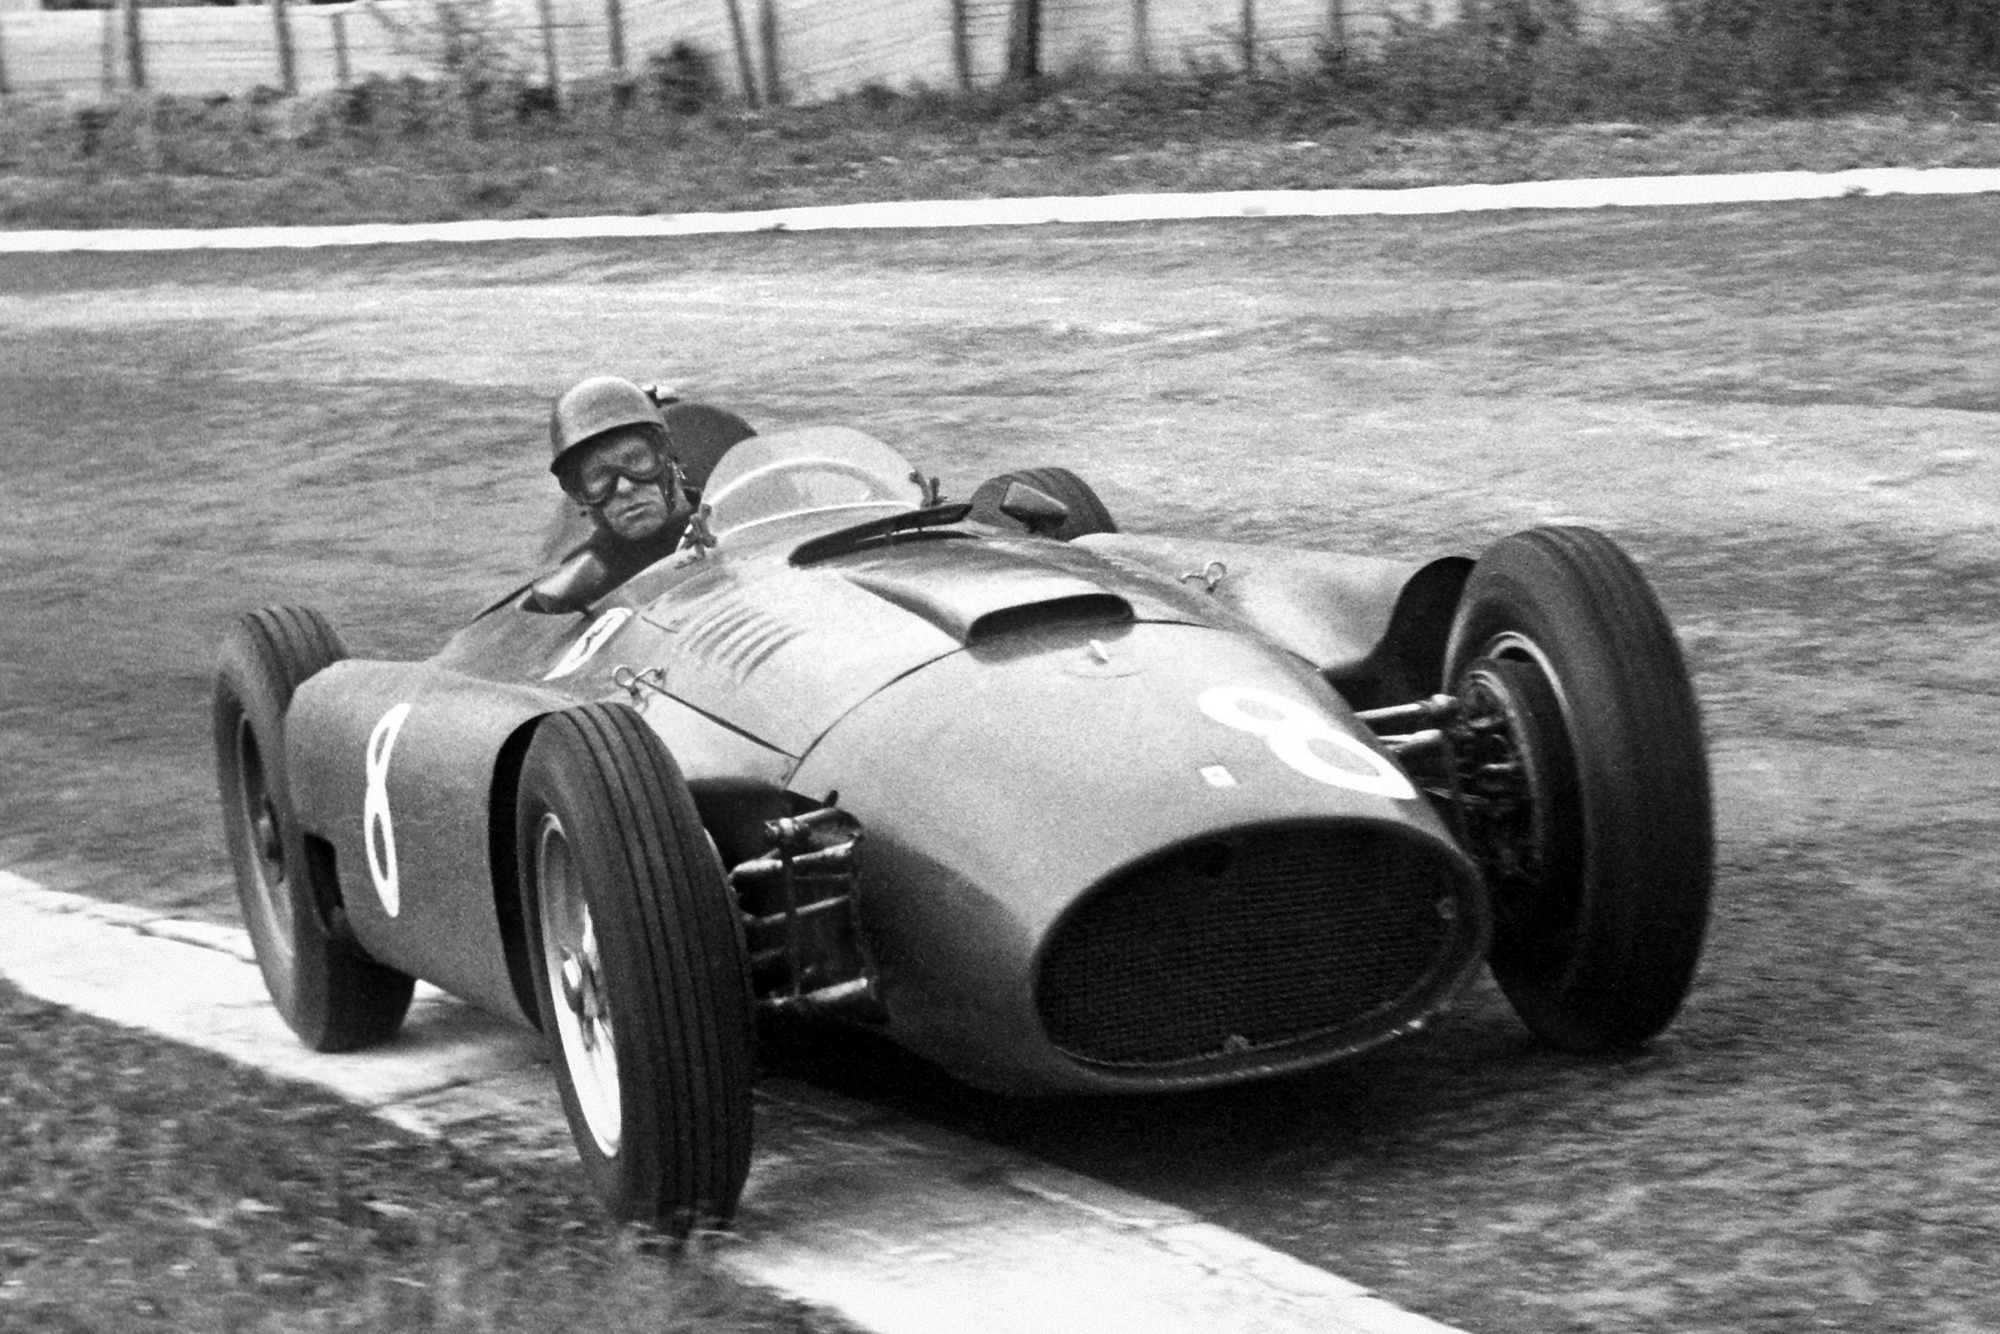 Peter Collins (Lancia-Ferrari D50) on his way to winning the 1956 Belgian Grand Prix, Spa-Francorchamps.